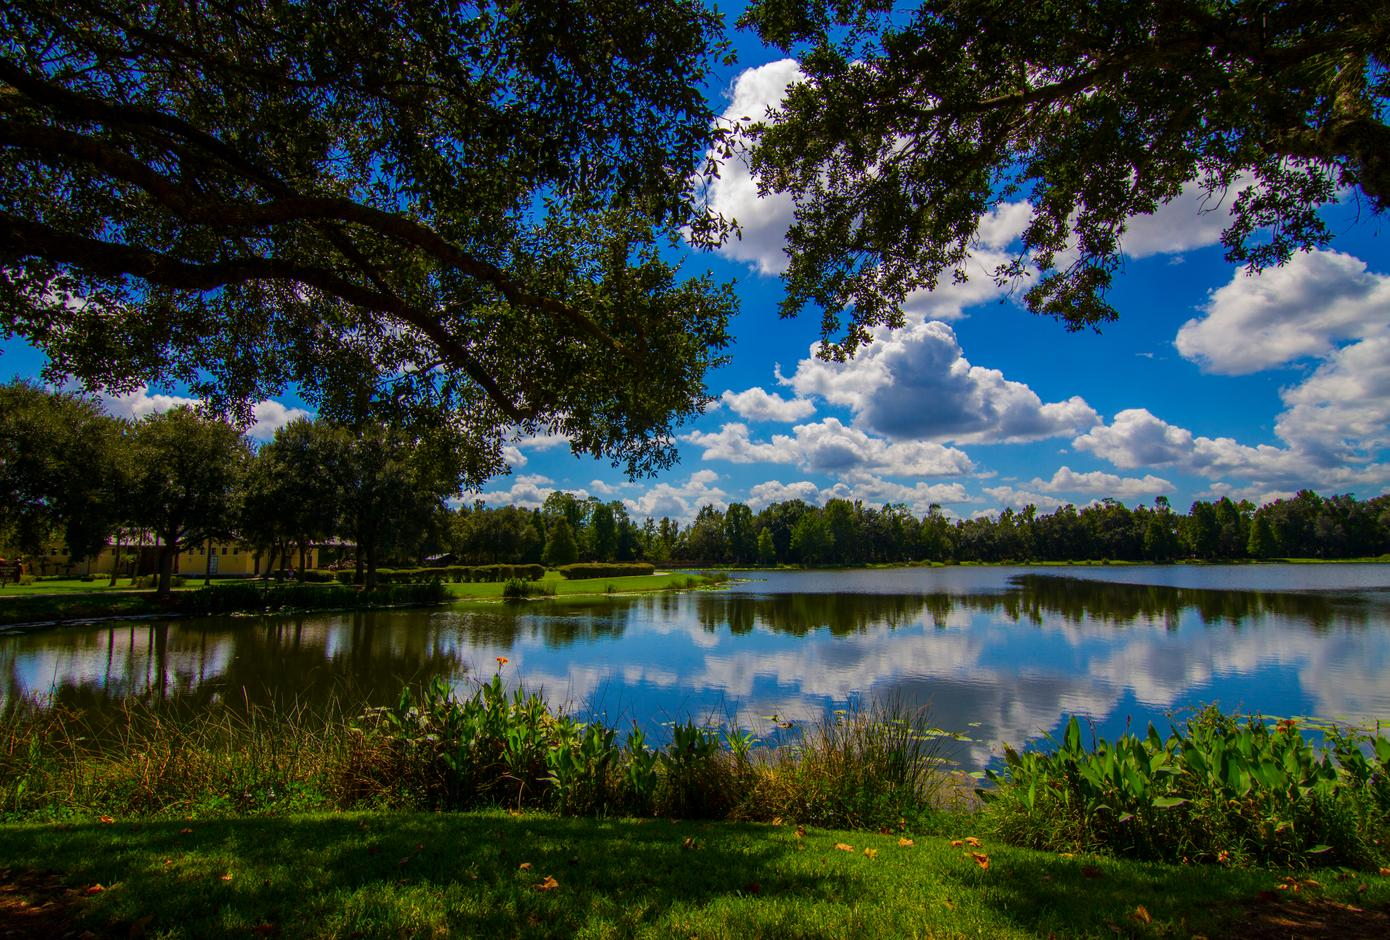 Lake in Orlando, Florida.